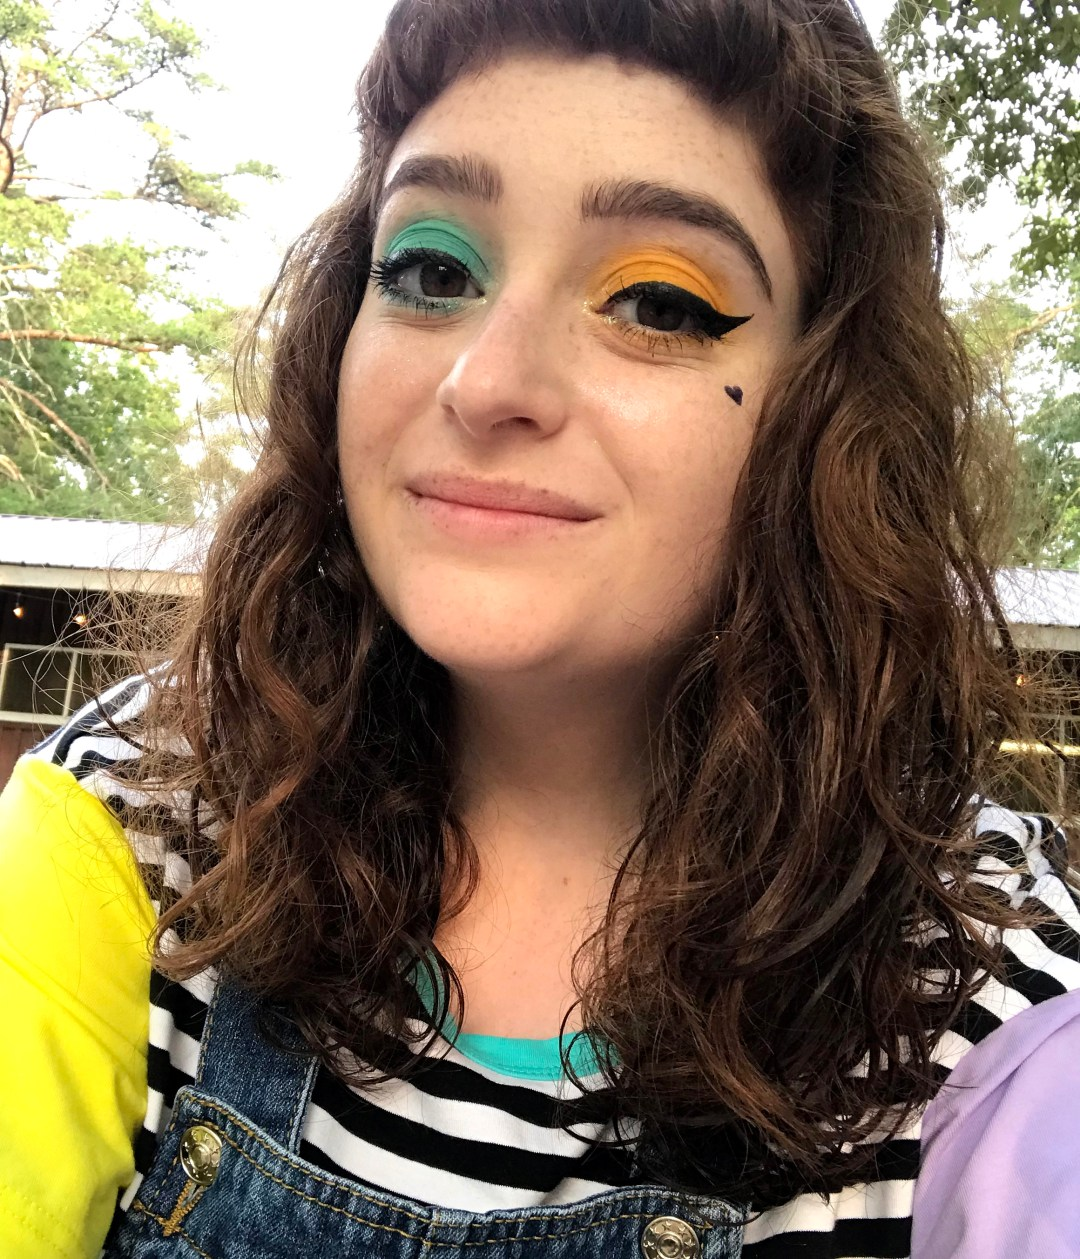 Camp Gritty makeup